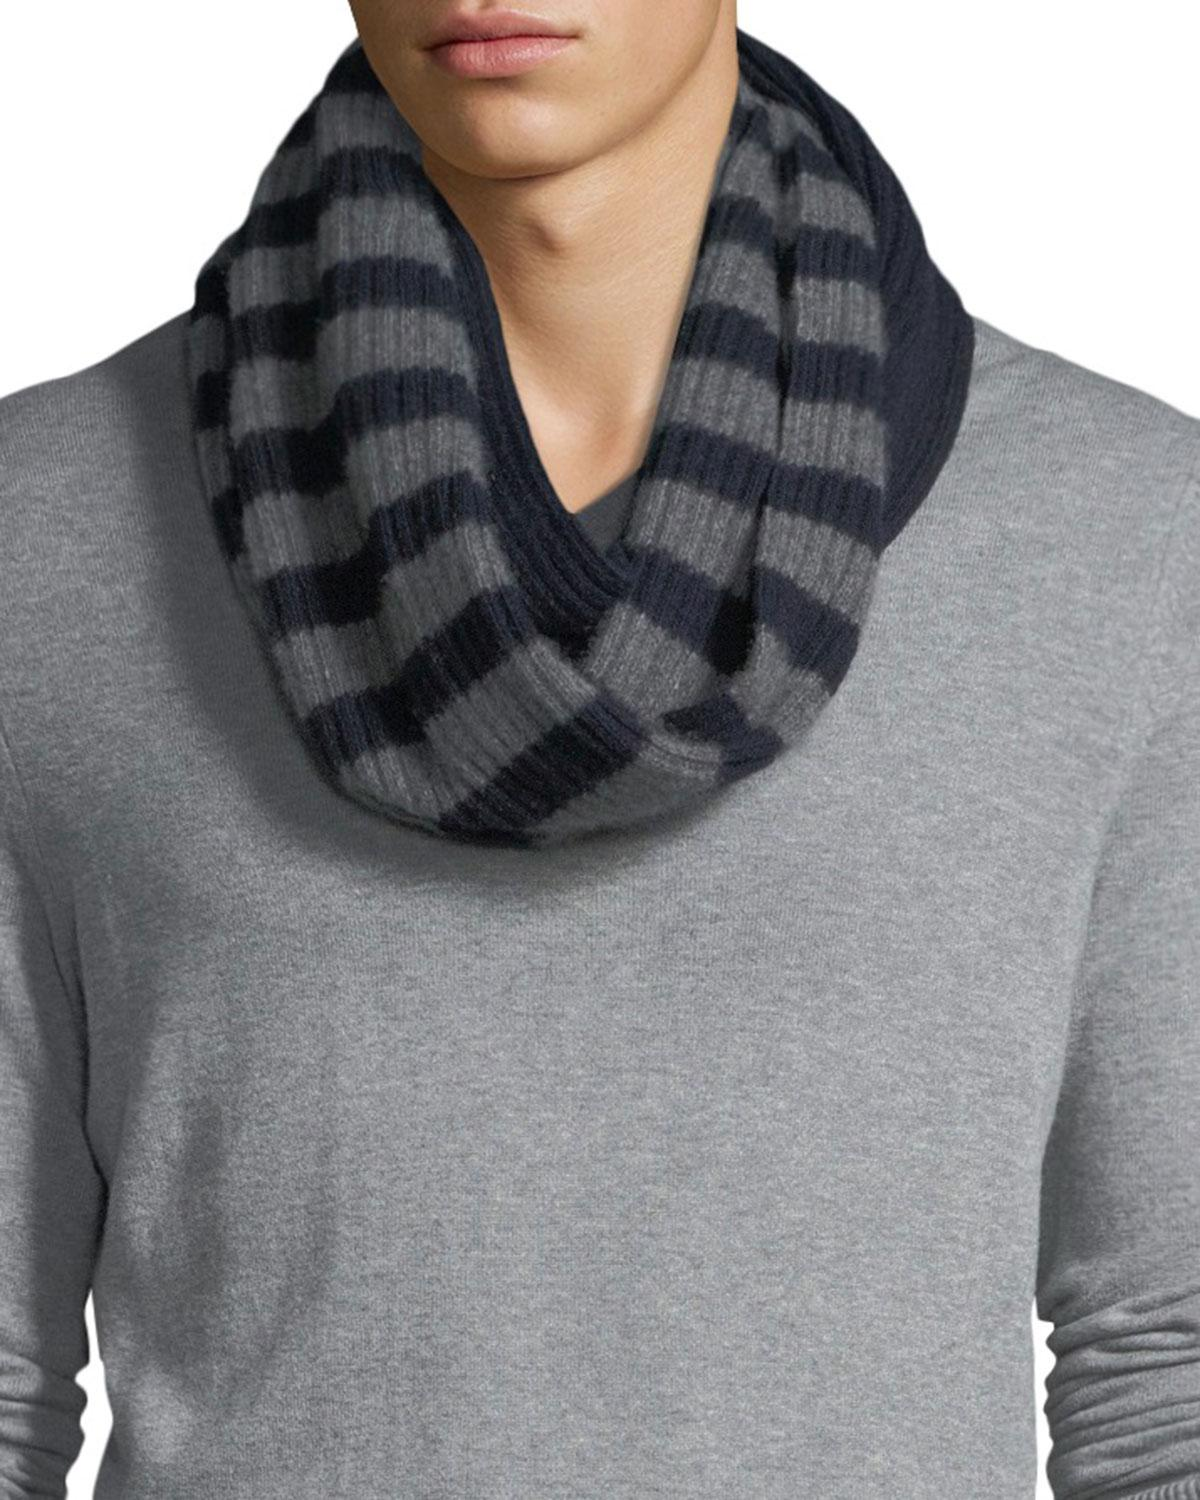 bea0ad16d Portolano Men's Cashmere Striped Infinity Scarf in Blue for Men - Lyst